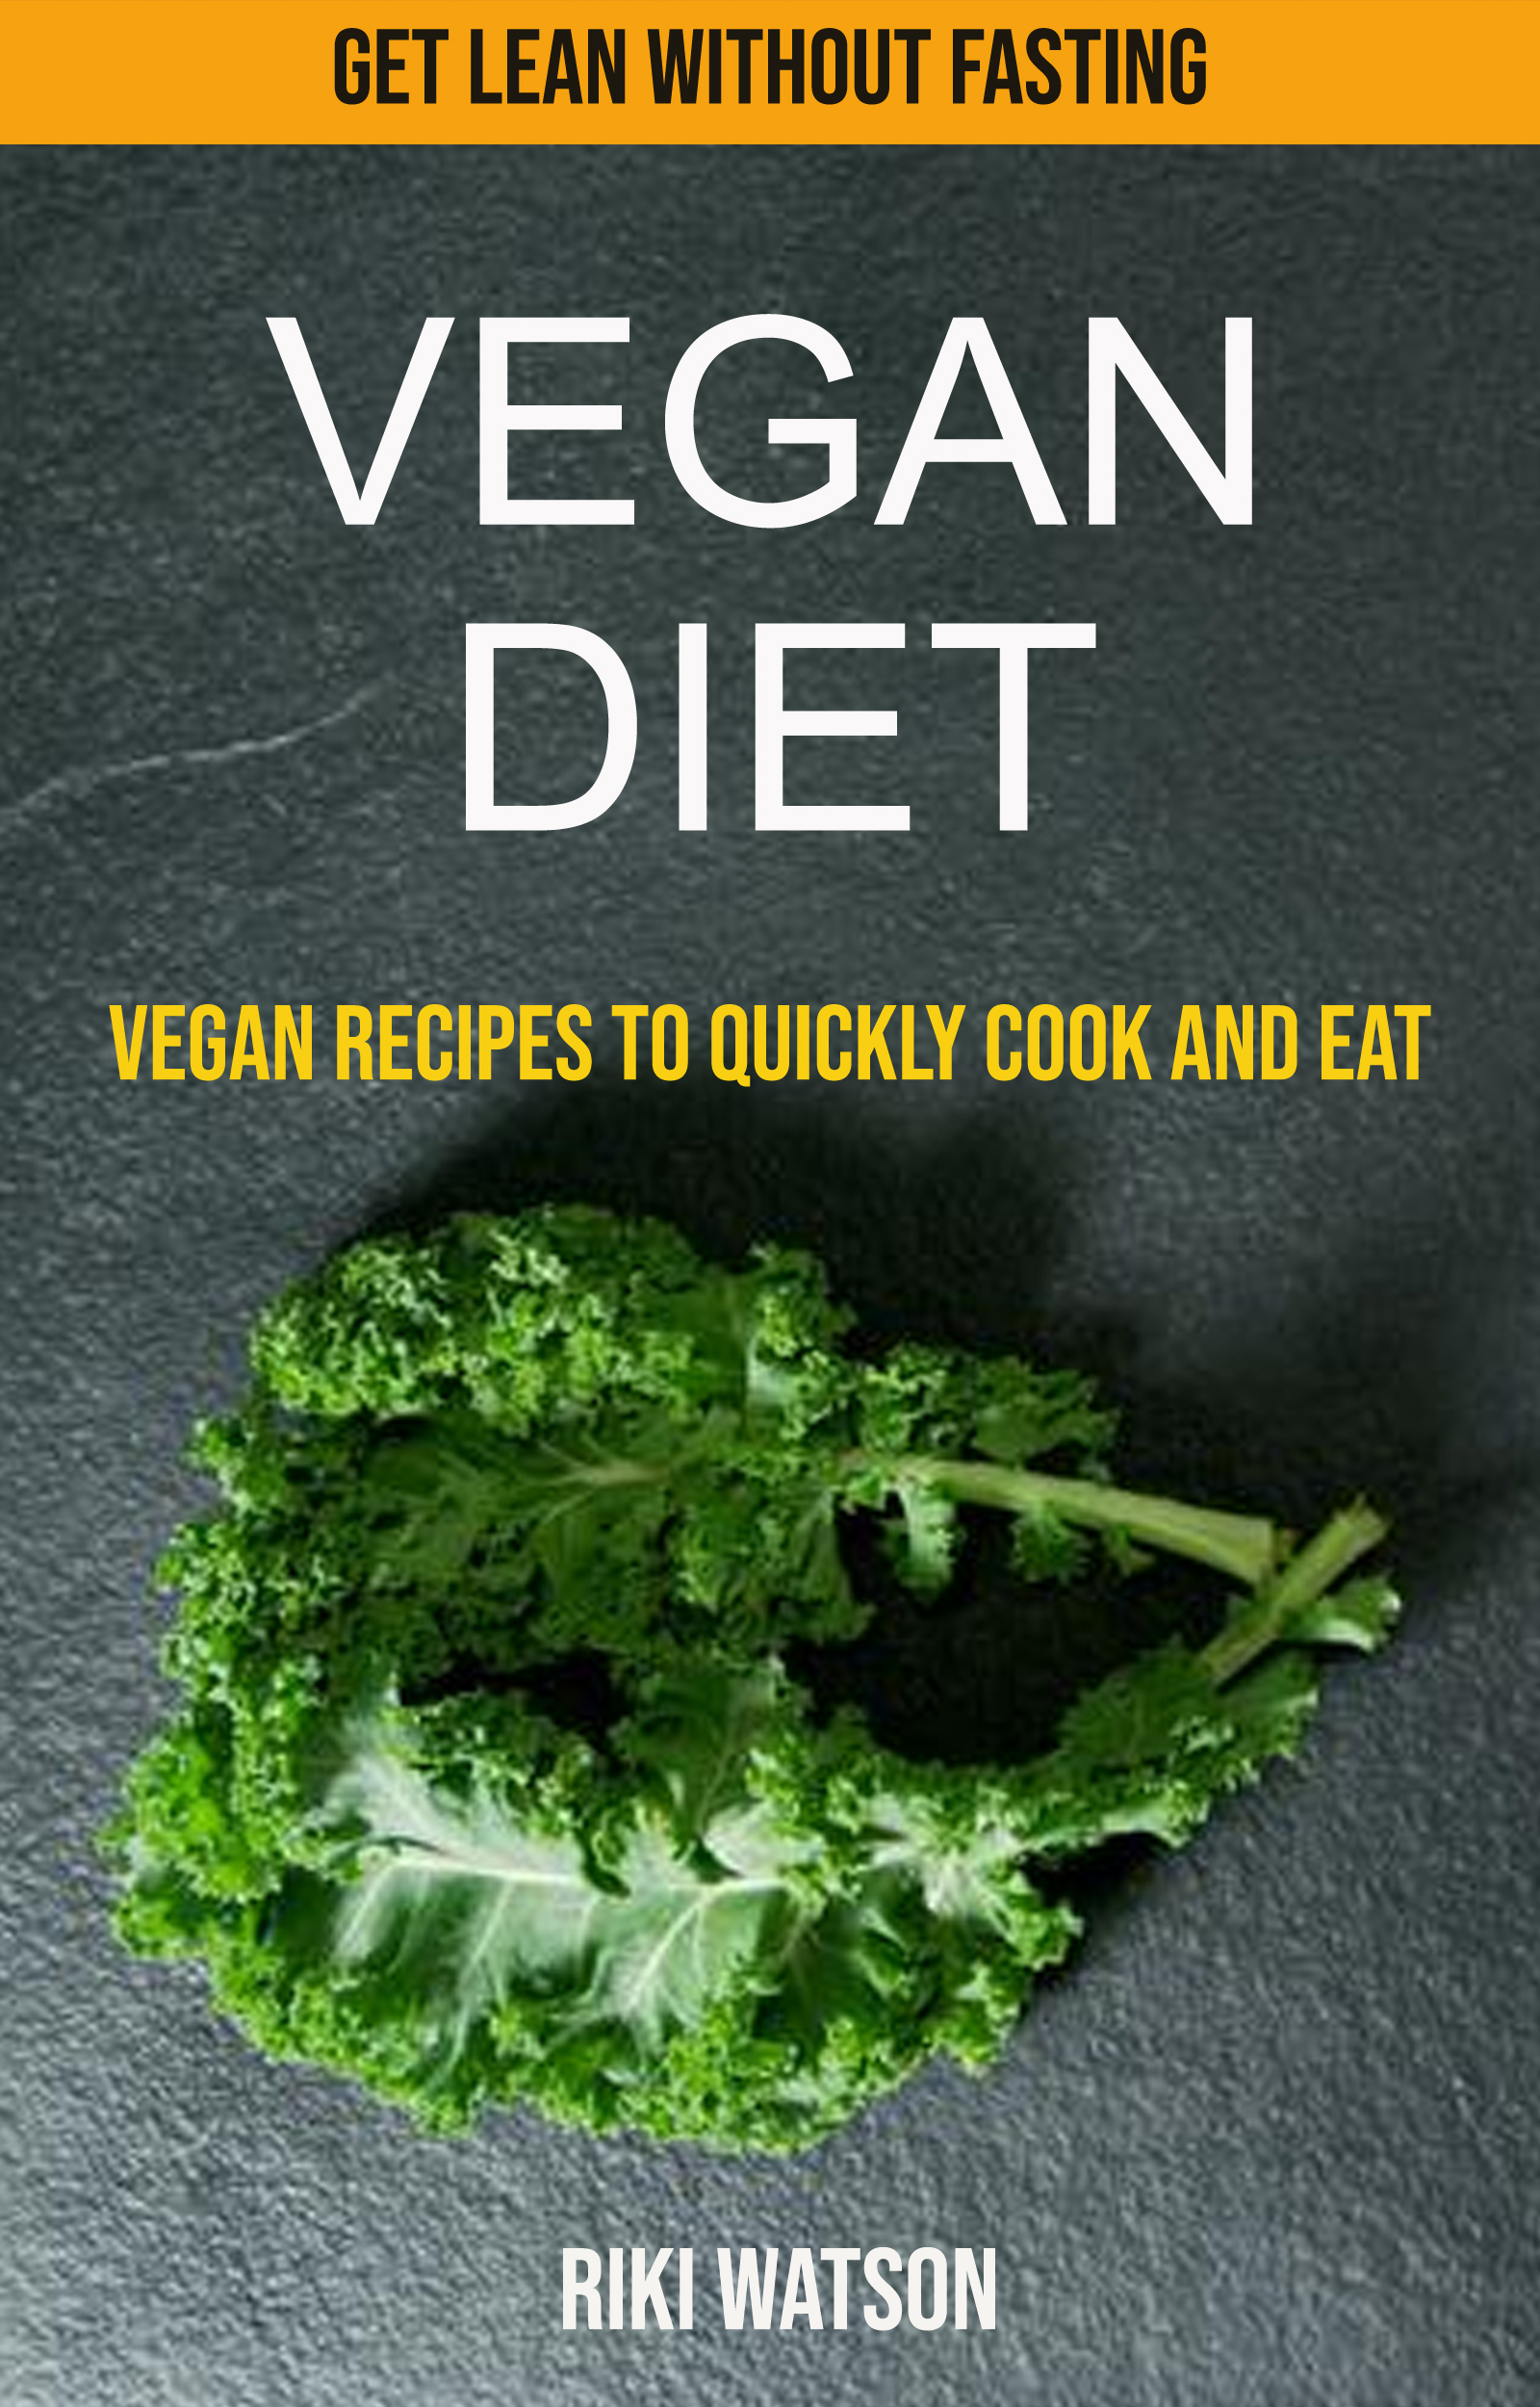 Vegan diet: vegan recipes to quickly cook and eat (get lean without fasting)